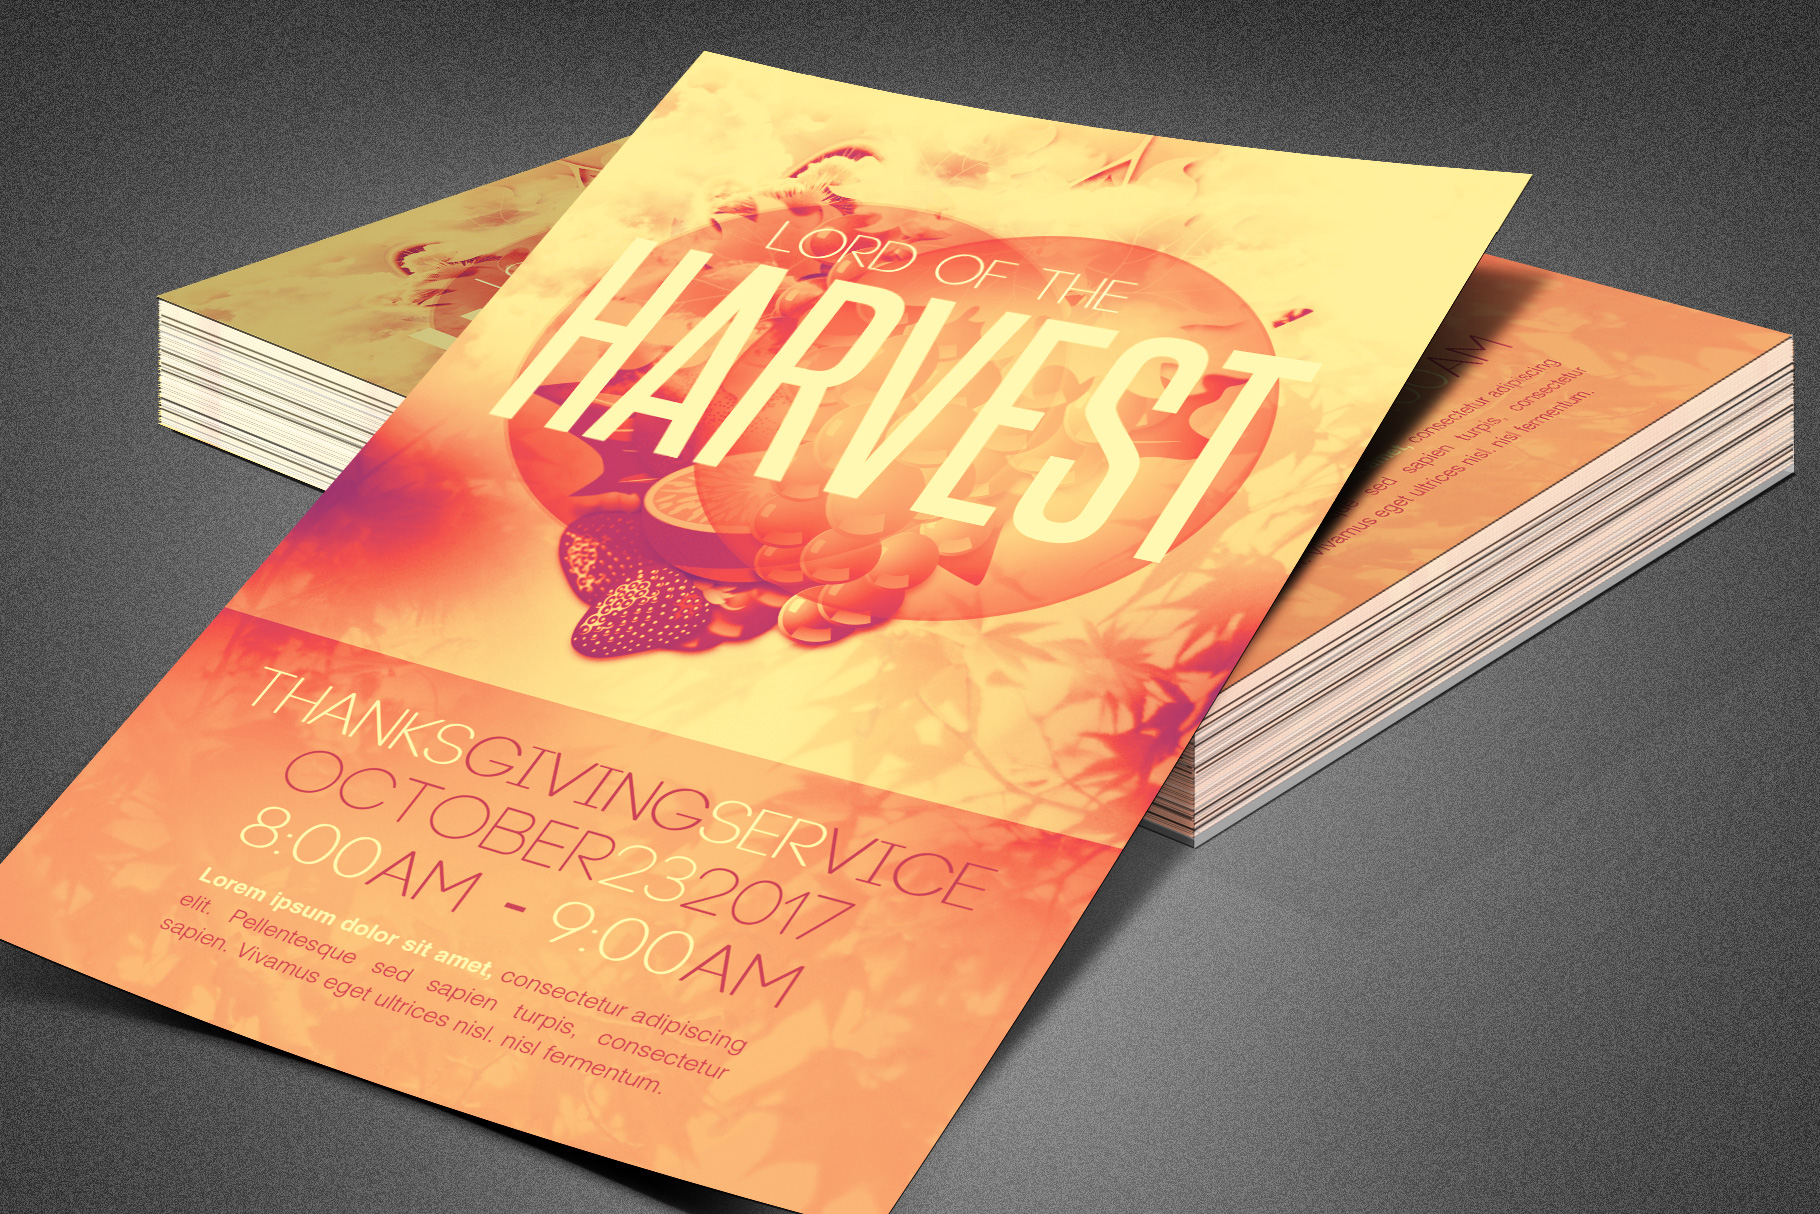 Lord of the Harvest Church Flyer example image 4